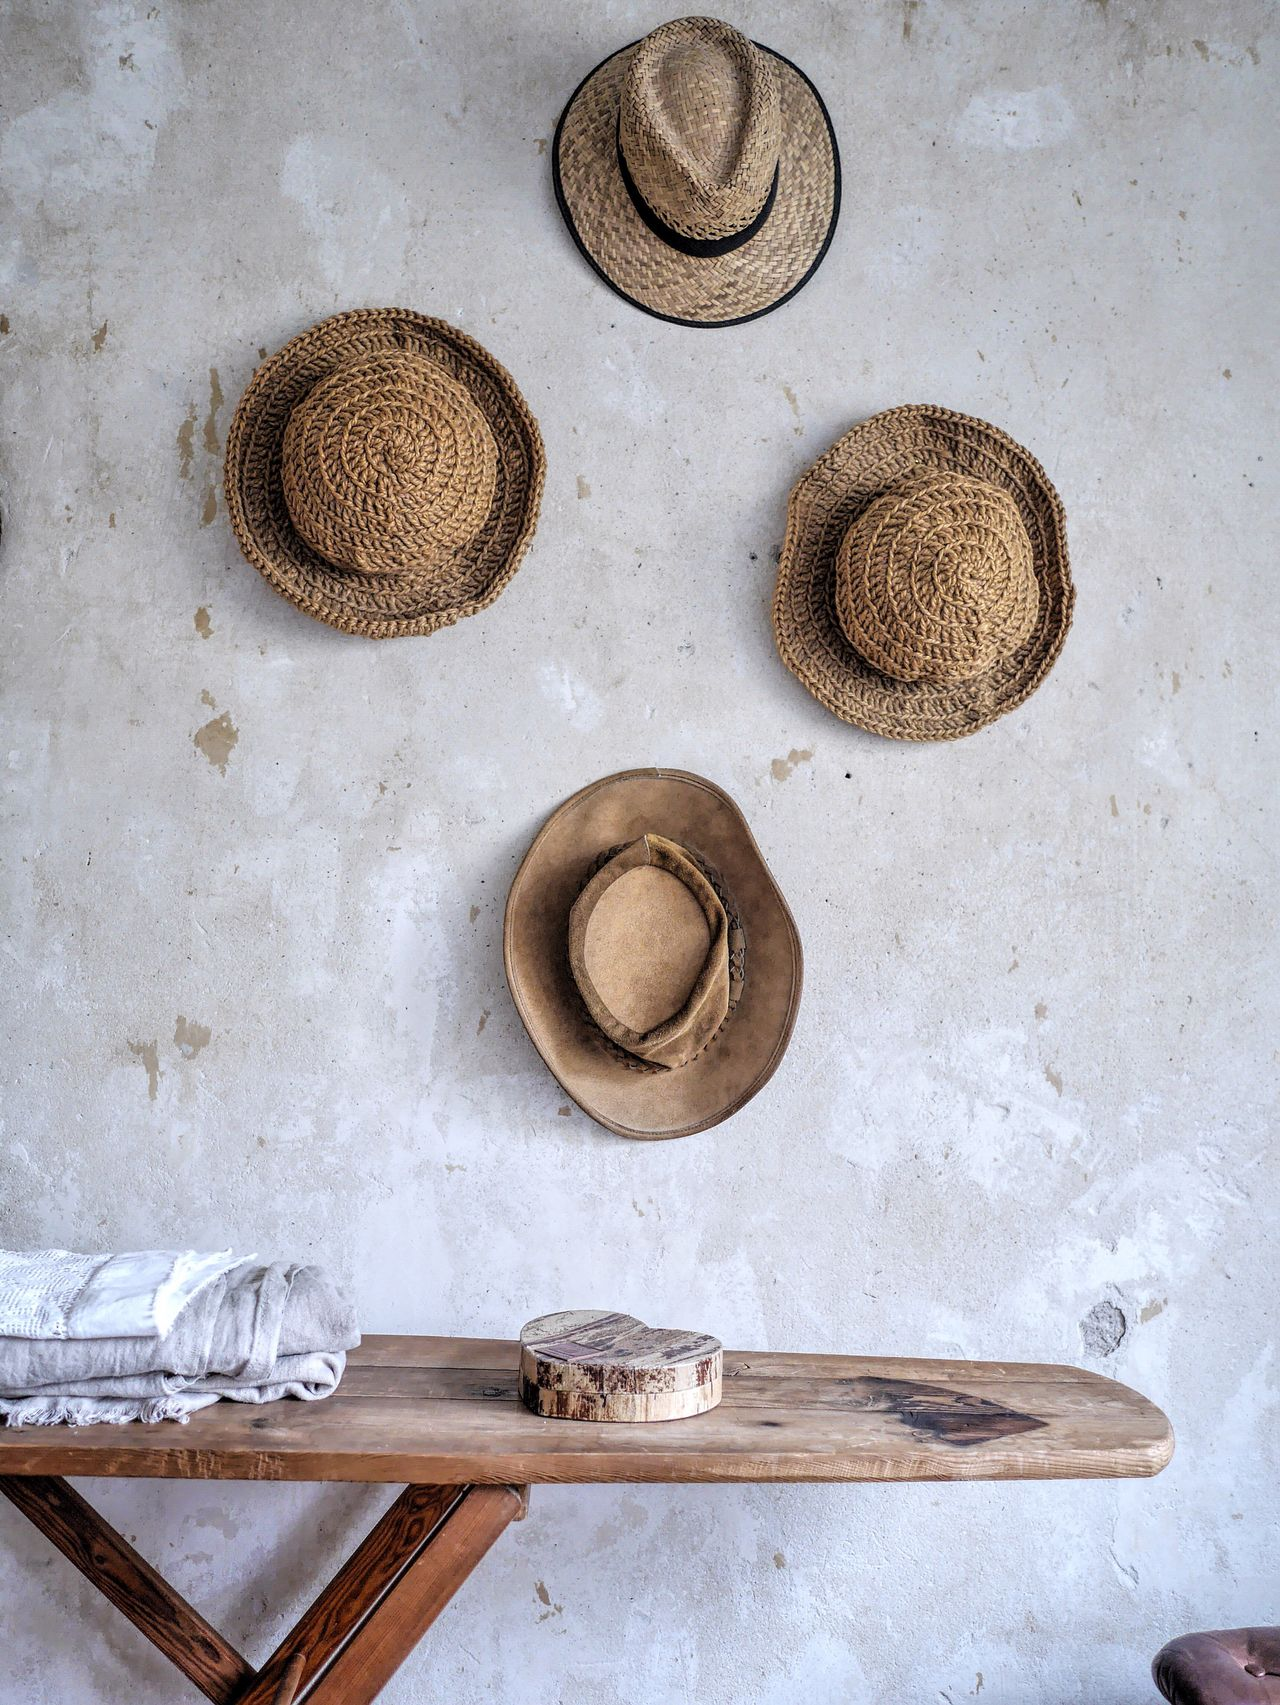 Table against wall with hats at home